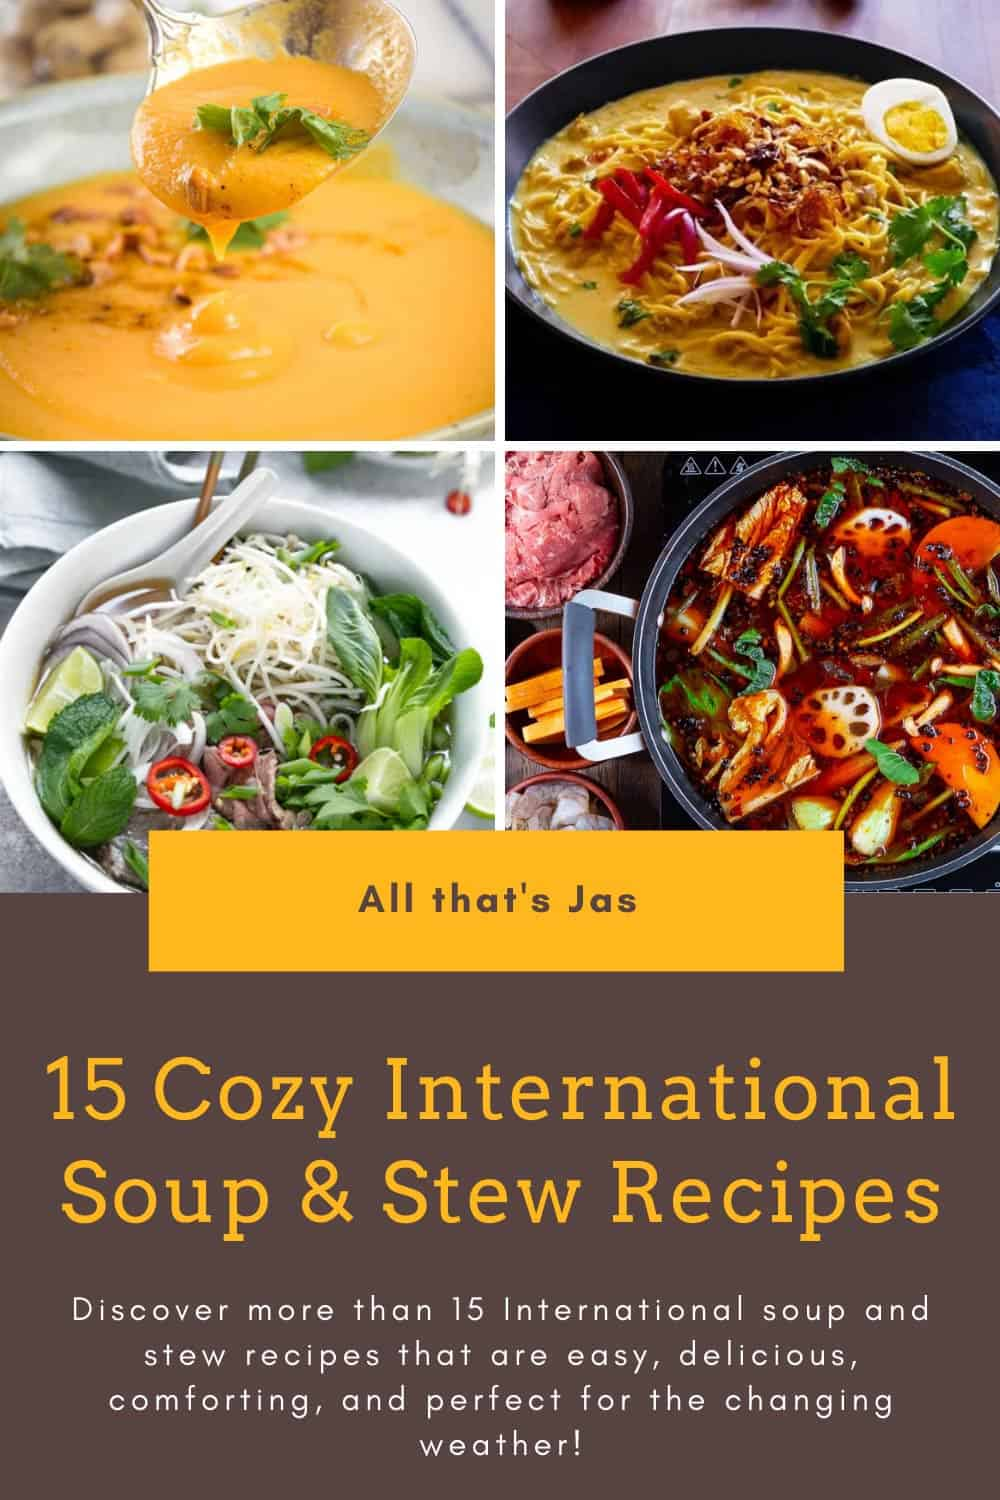 A poster with four photos of hearty stews and text.